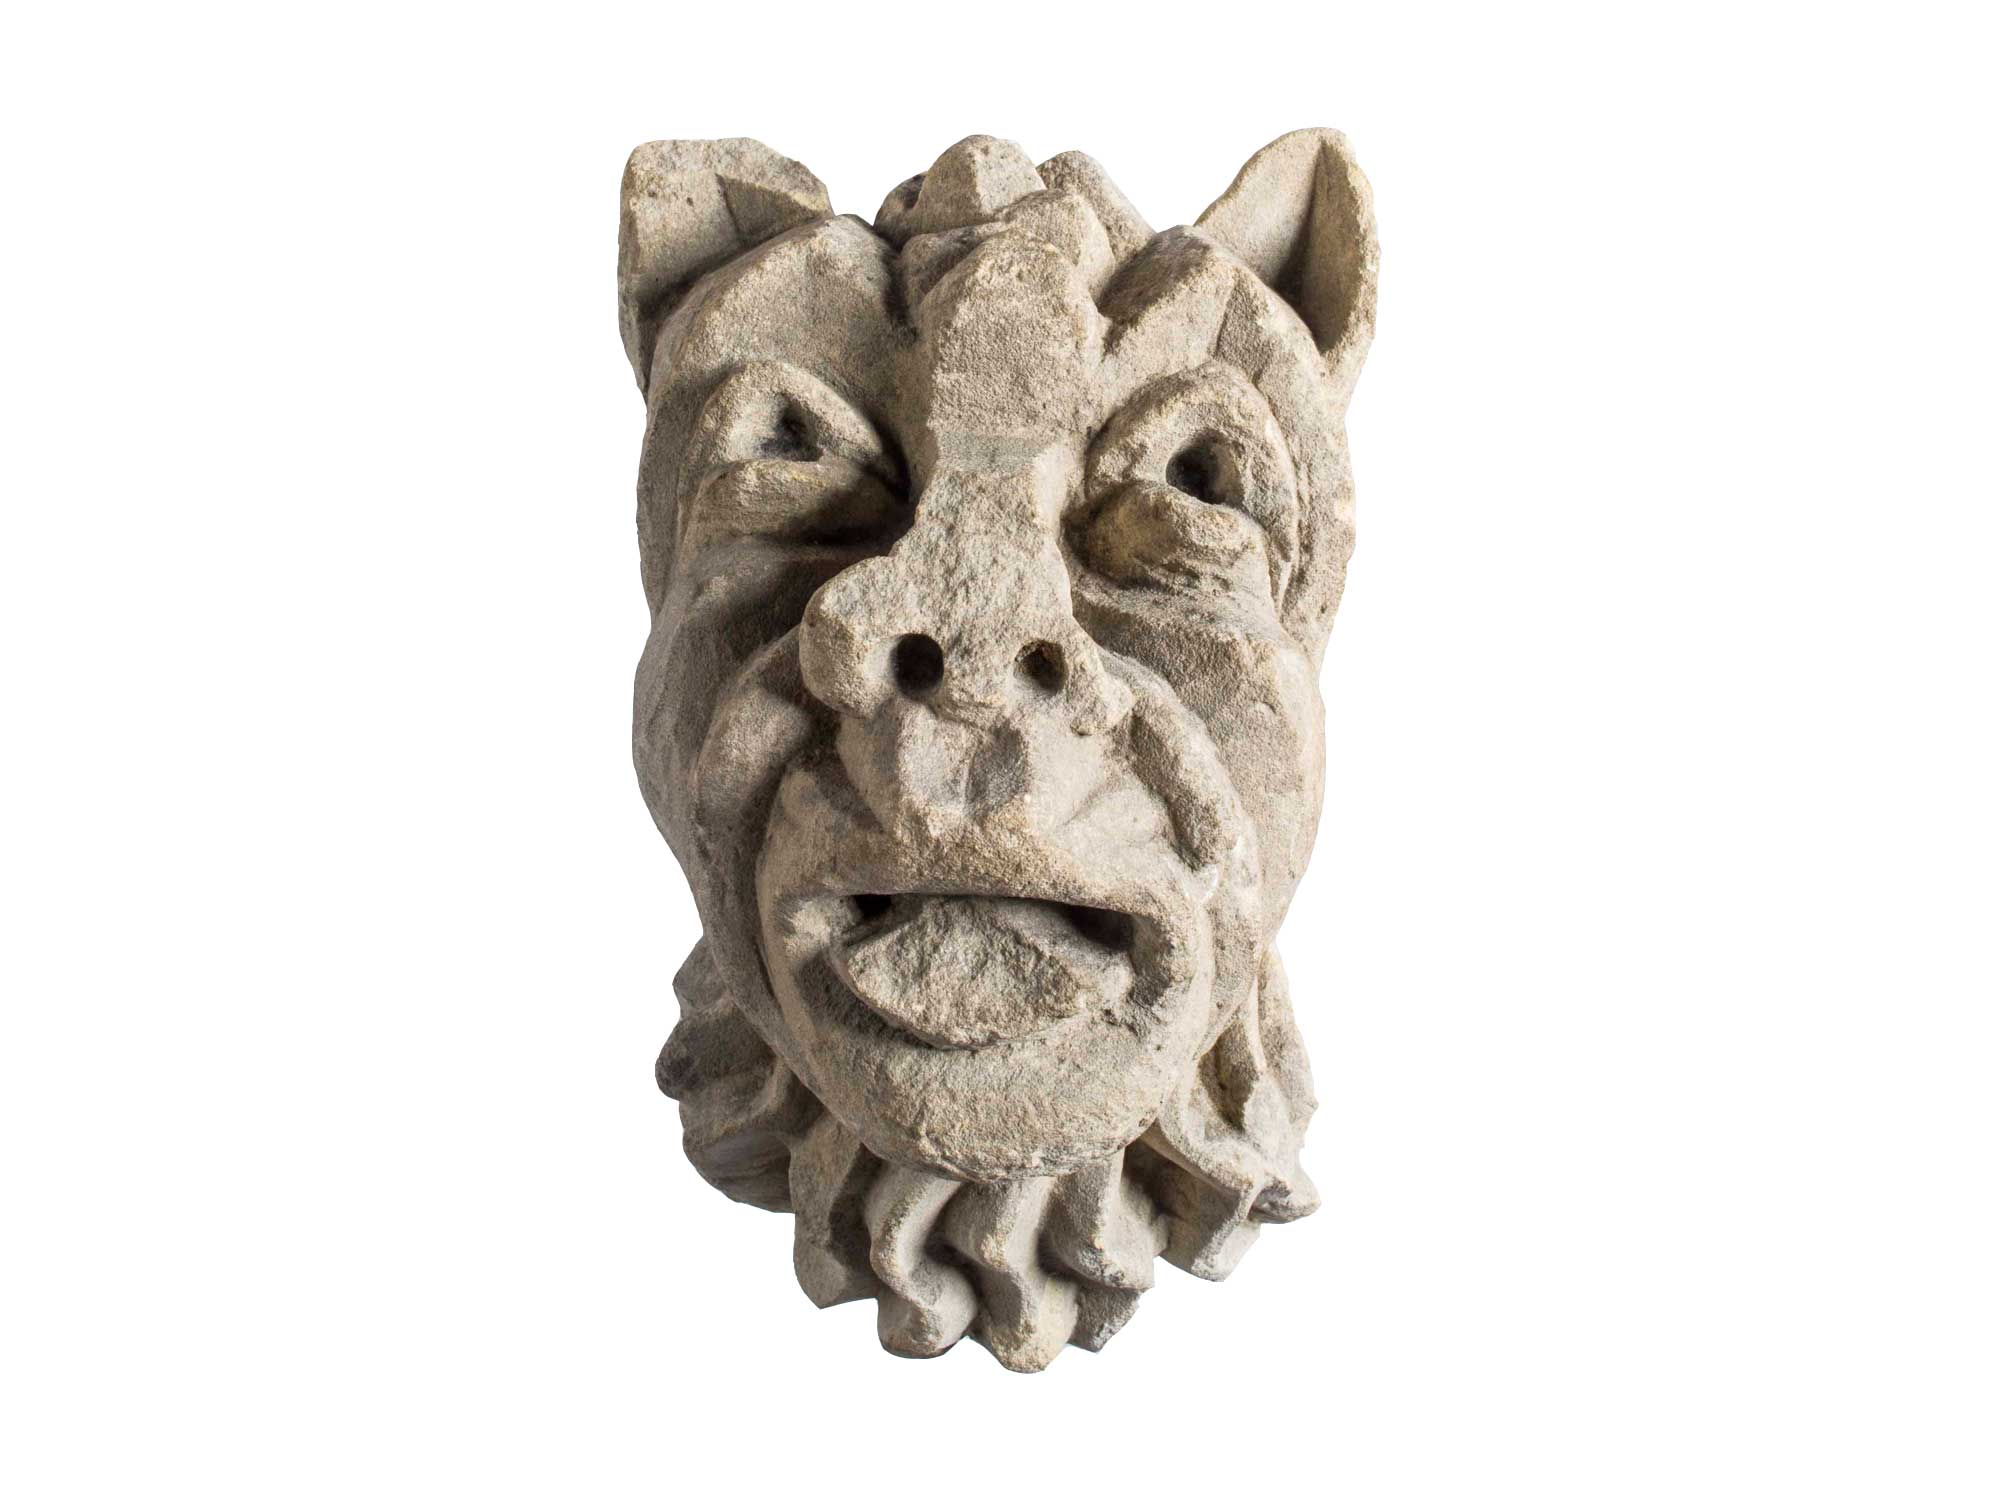 a carved stone gargoyle with pointed ears